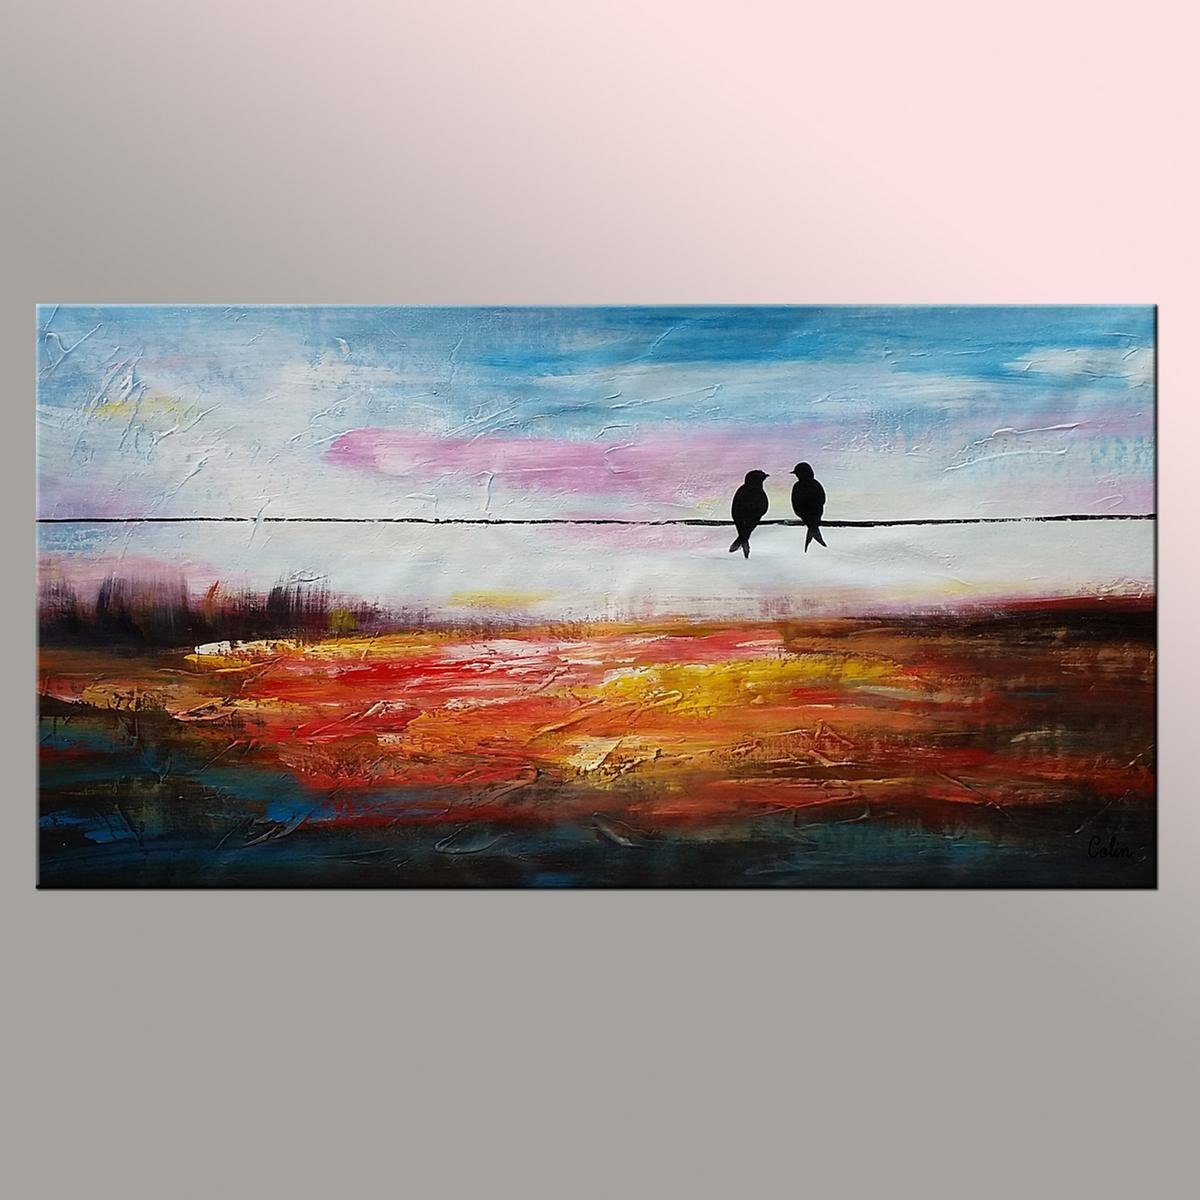 Contemporary Abstract Artwork, Wall Art, Modern Art, Love Birds Painting, Painting for Sale, Abstract Art Painting-ArtWorkCrafts.com